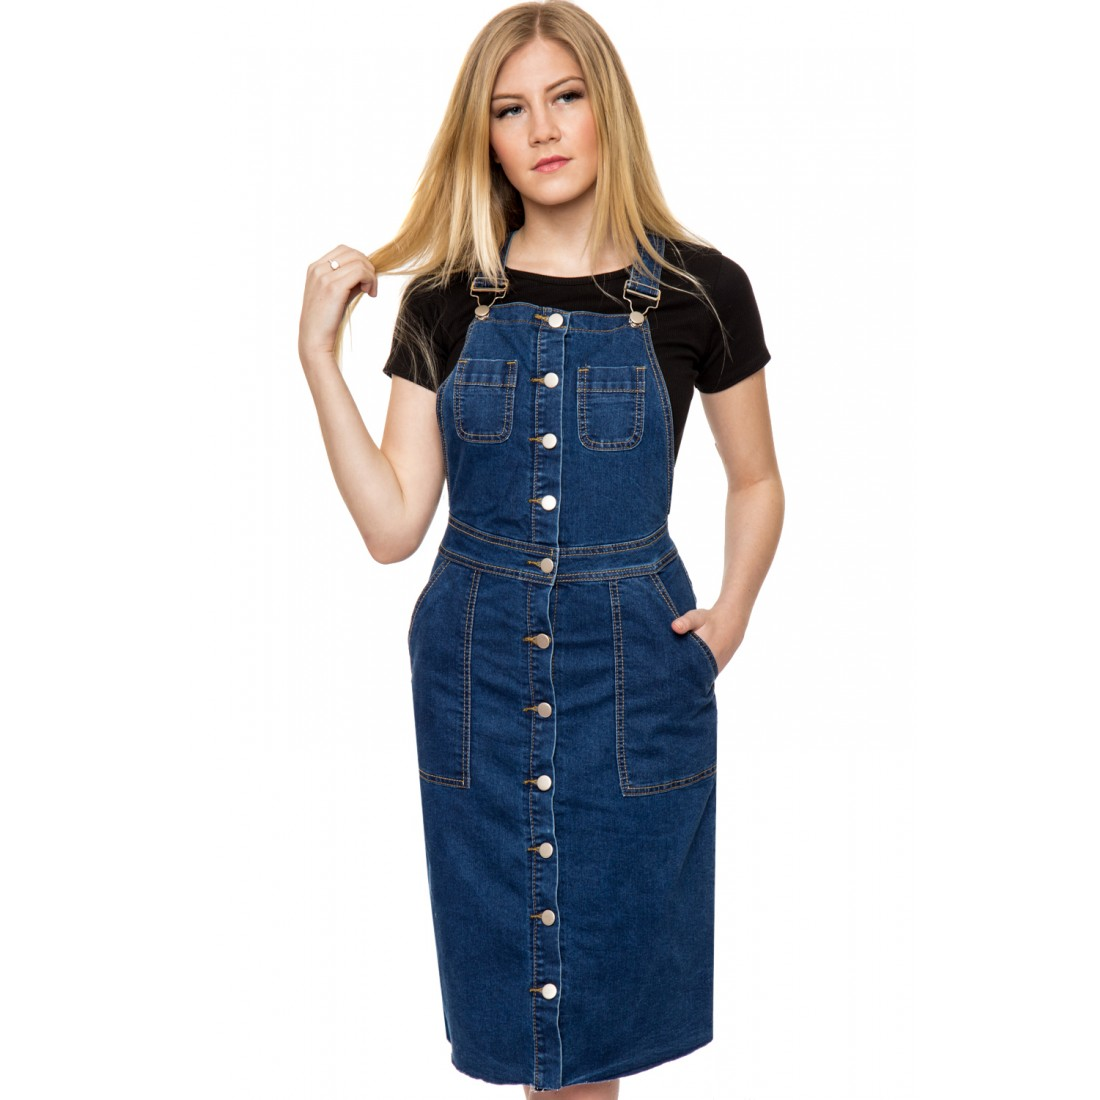 Discover women's denim at ASOS. If you are a denim fan, shop on ASOS for denim jackets, overalls, shirts & dresses from brands like Levi's, Cheap Monday.